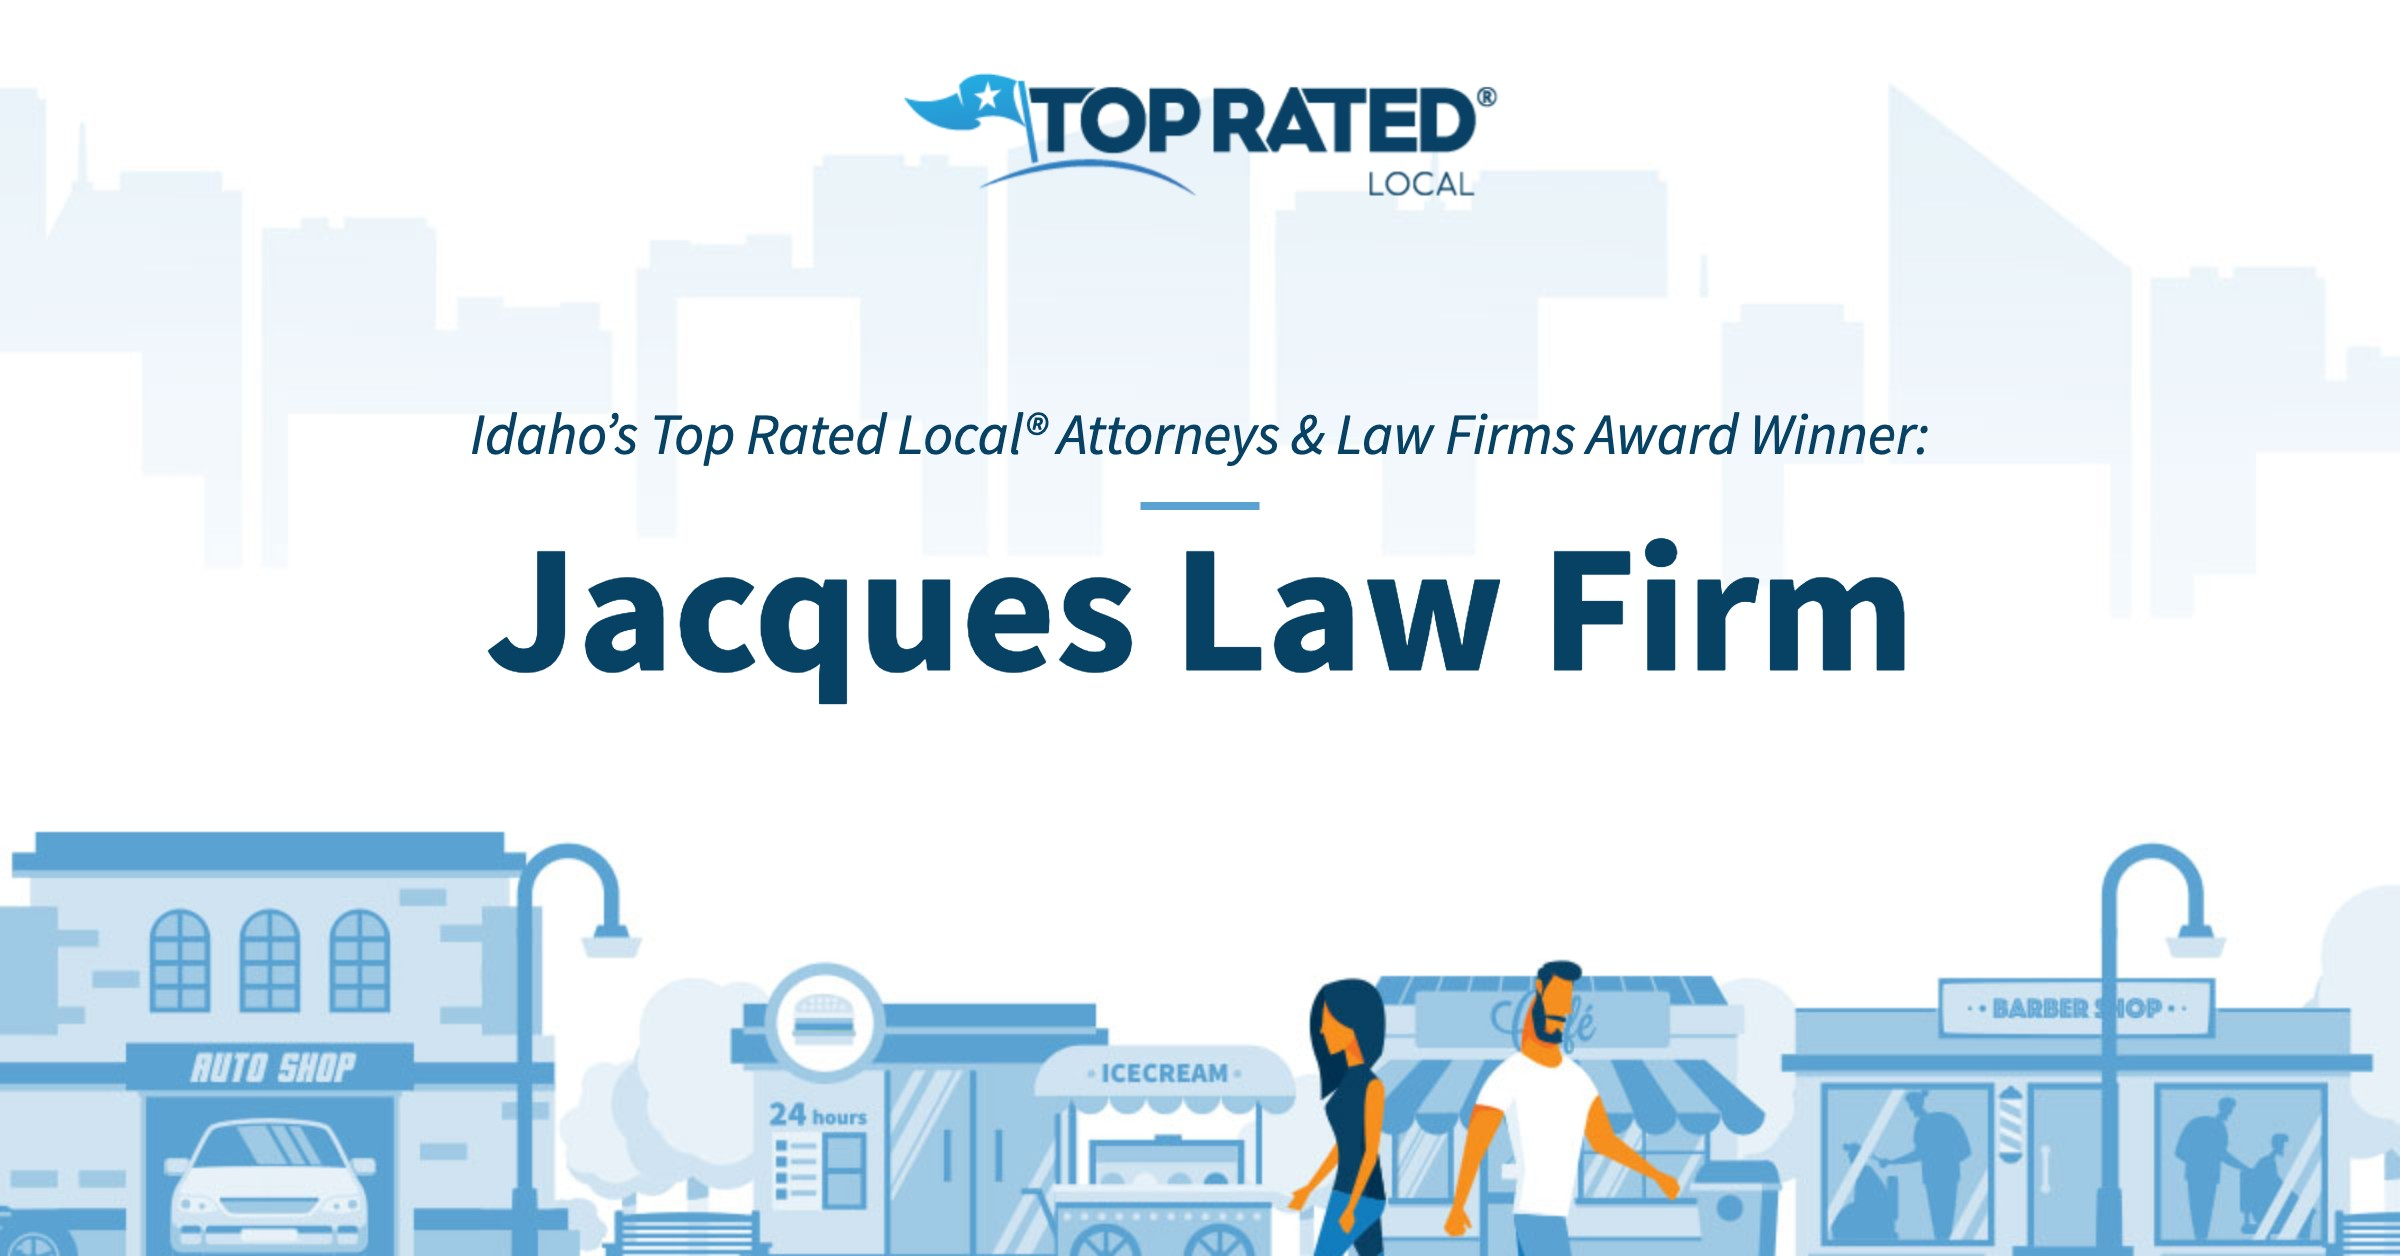 Idaho's Top Rated Local® Attorneys & Law Firms Award Winner: Jacques Law Firm